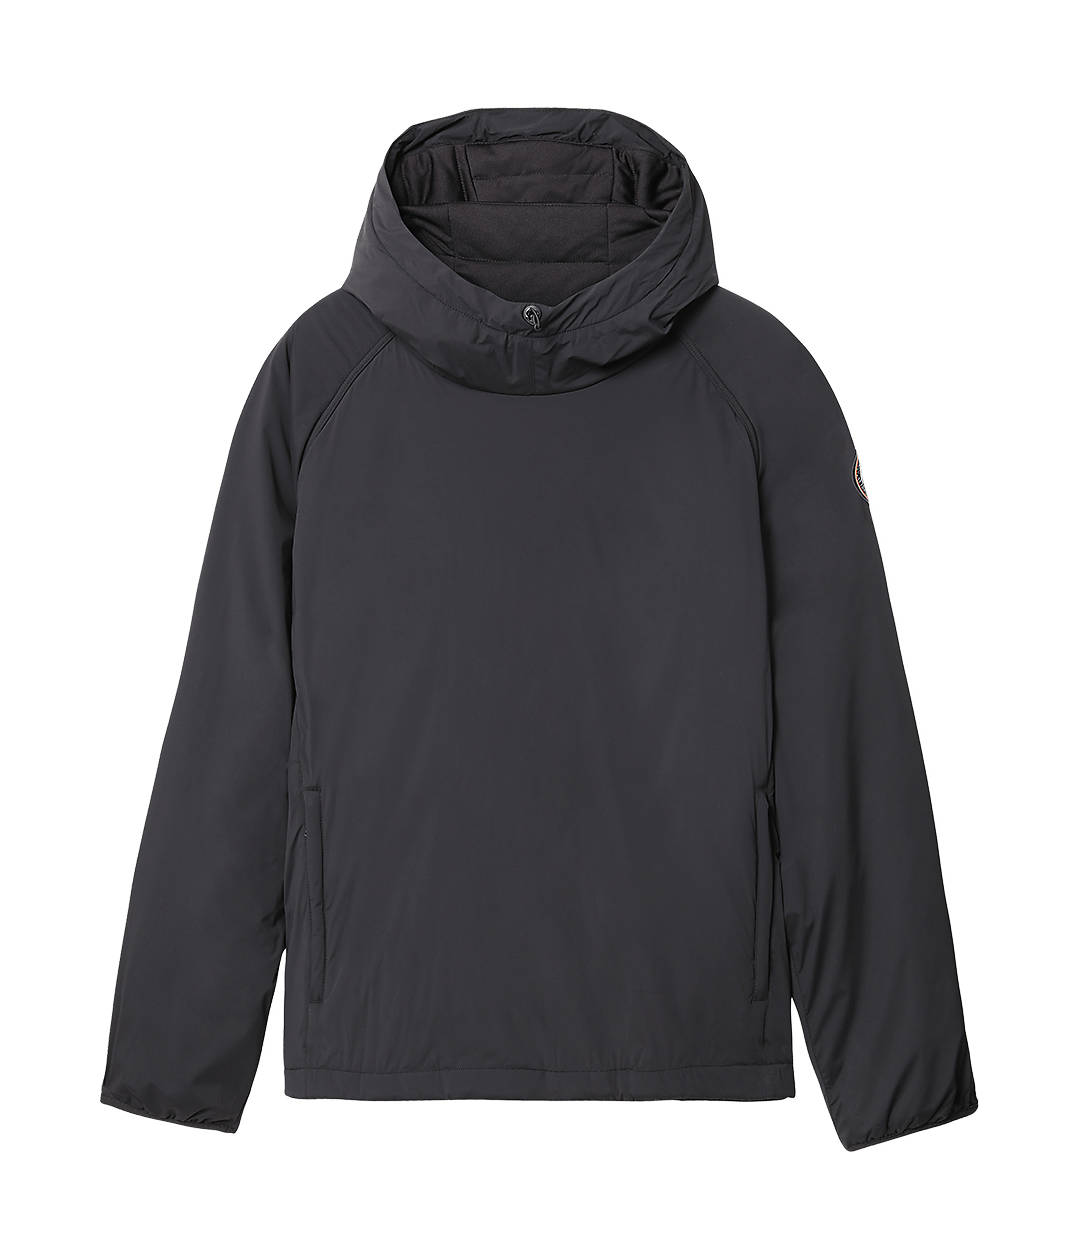 Kurzjacke Adoy Superlight